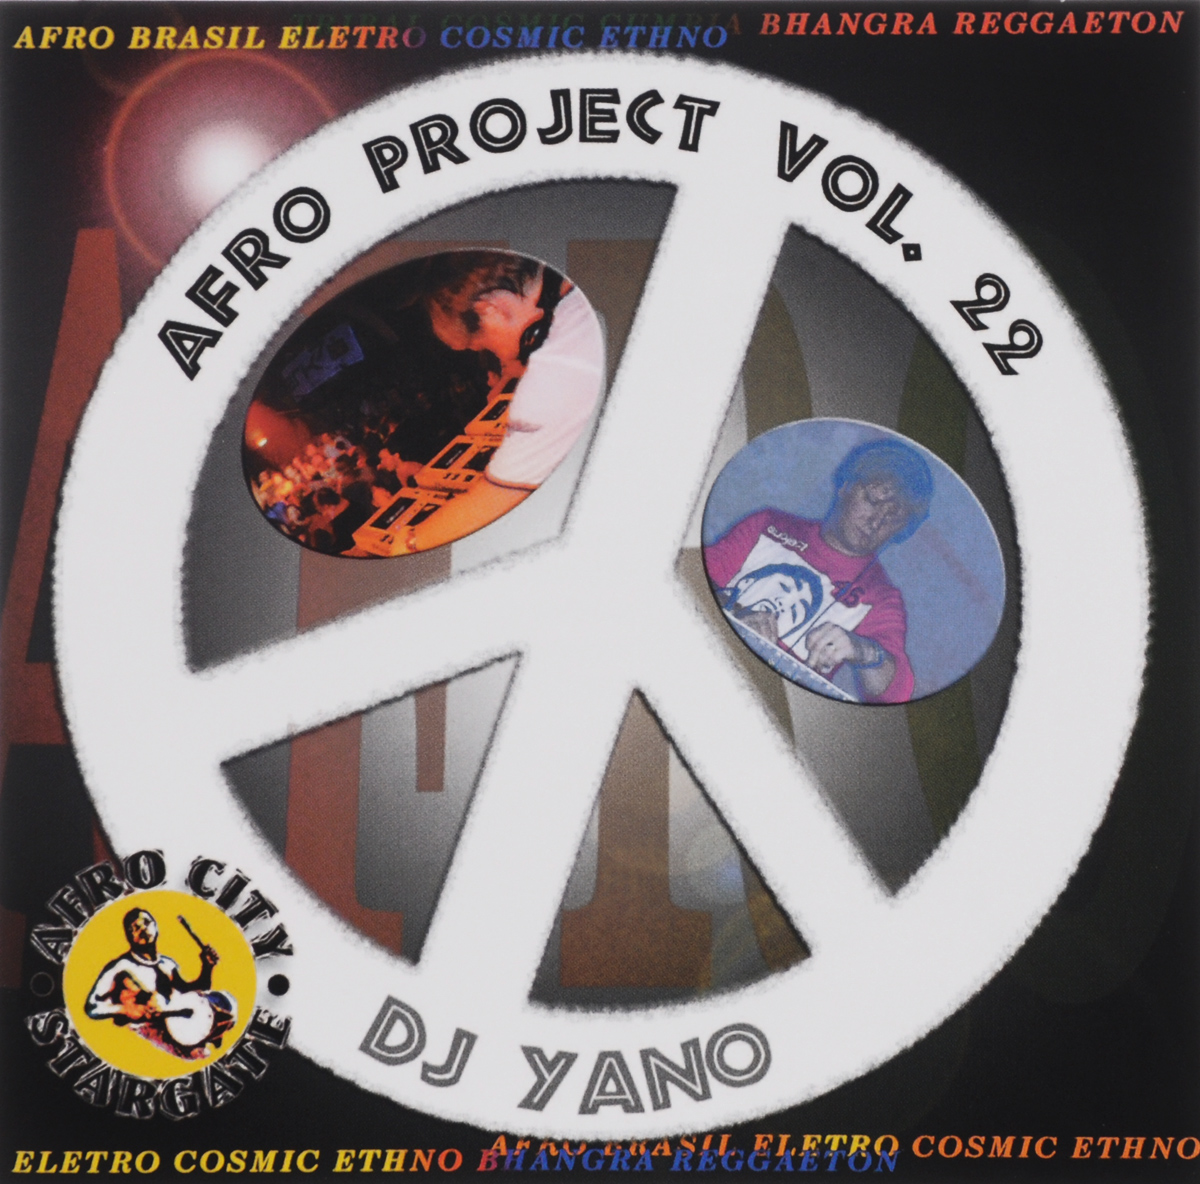 Dj Yano Dj Yano. Afro Project. Vol. 22 цена и фото